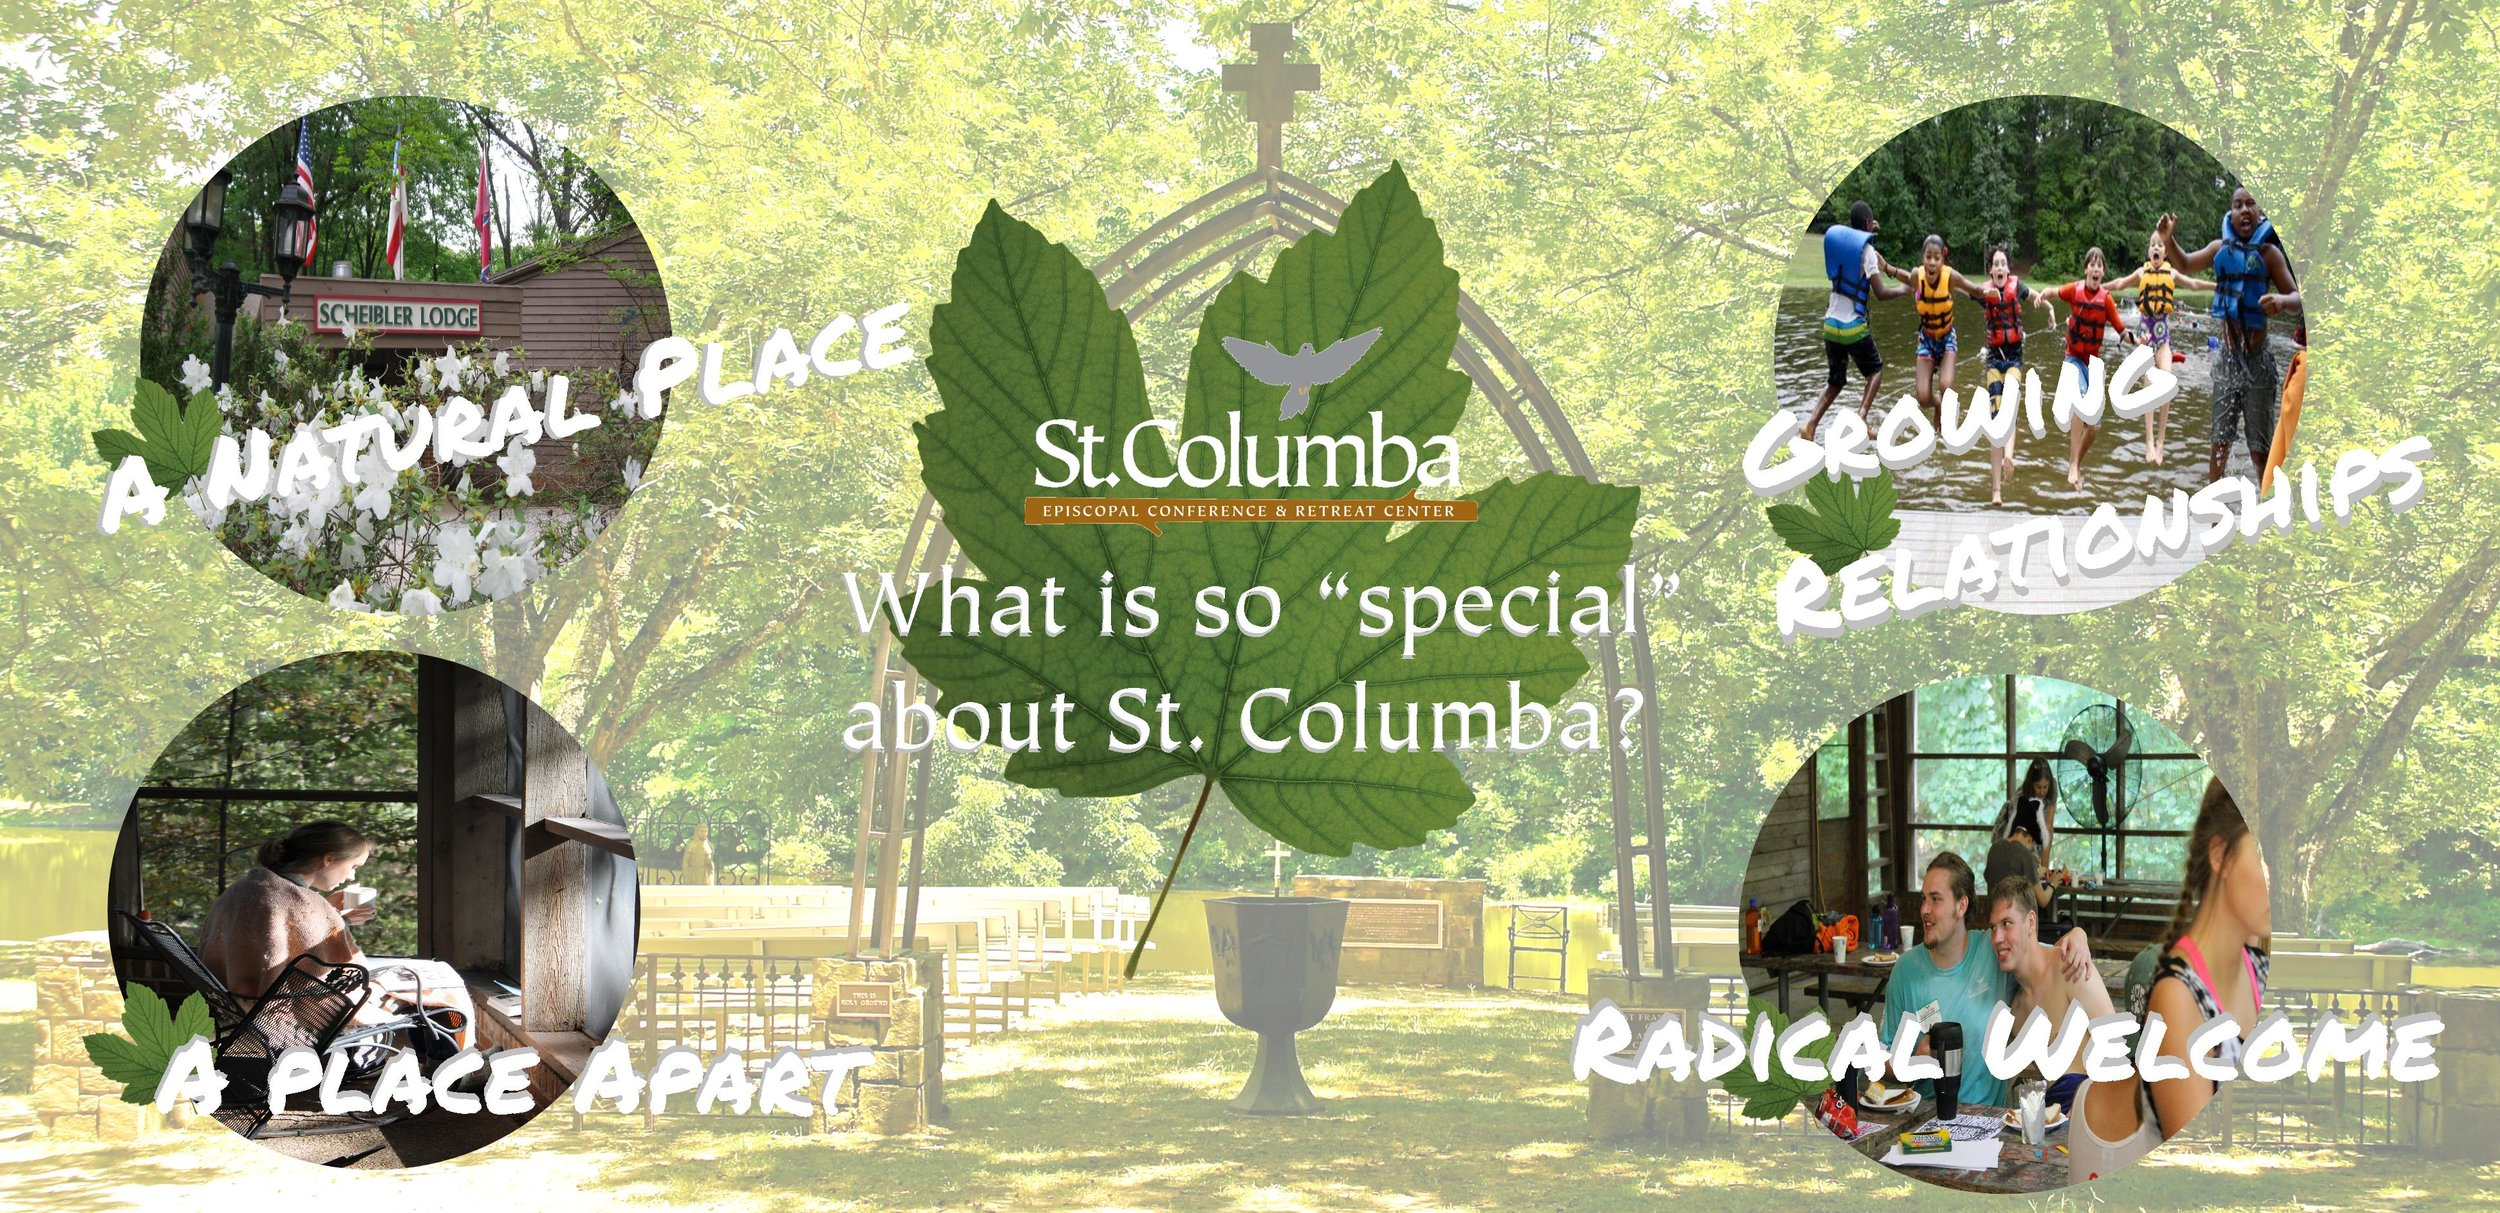 These key ingredients are the things about St. Columba that are valued by the people we serve, and therefore are the untouchable, sacred purposes for our ministry.